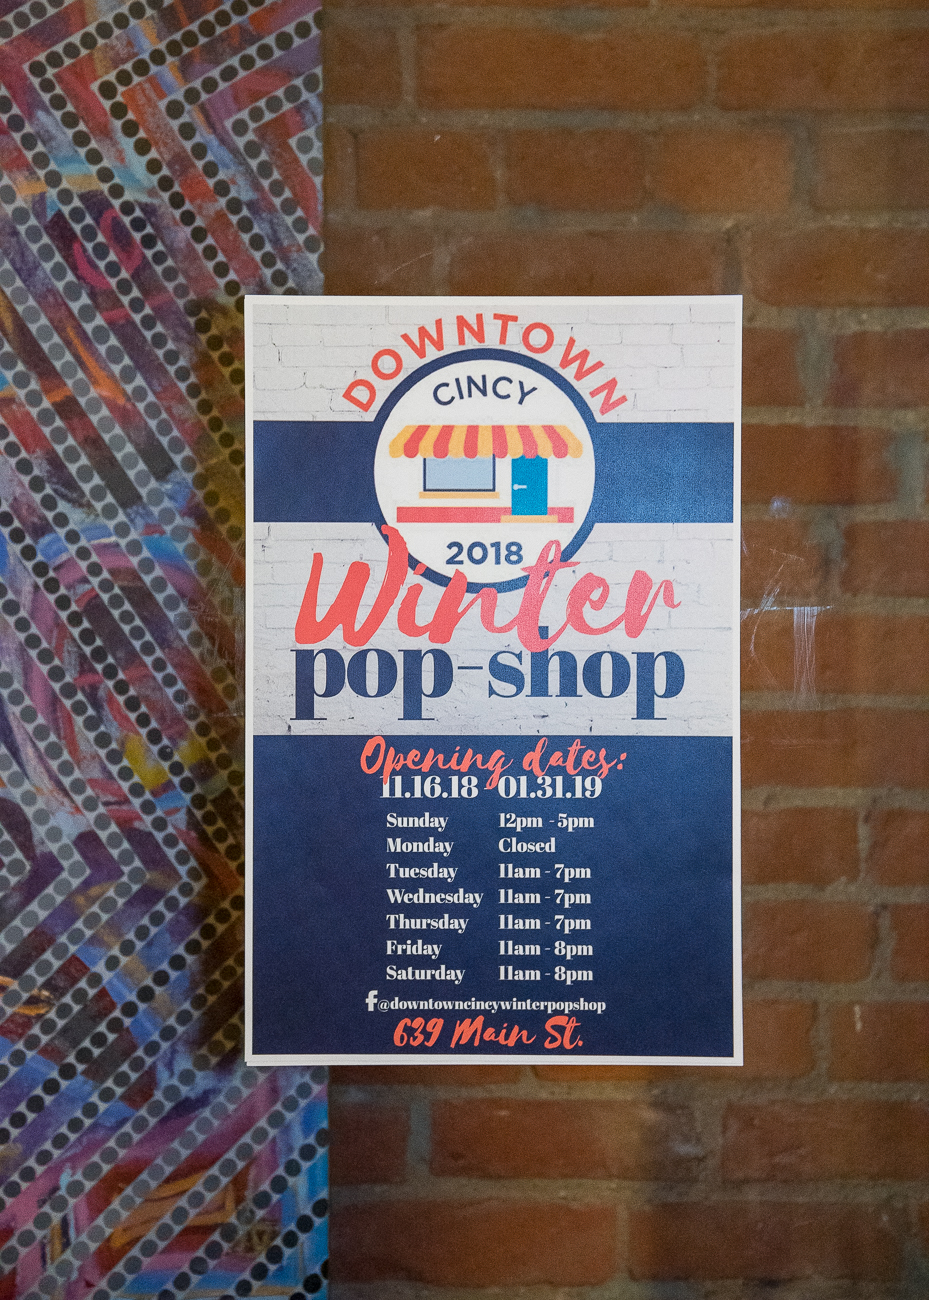 The Pop-Shop is the result of a collaboration between Downtown Cincinnati Inc. and the City of Cincinnati. Working with property owners in the city, the program places artists, makers, and business owners together to activate spaces in a different way. Earlier this year, DCI put out a call to entrepreneurs and many applied to be featured in this year's shop. Of the applicants, four business-savvy women were chosen to head up the 639 Main Street storefront. / Image: Phil Armstrong, Cincinnati Refined // Published: 12.4.18